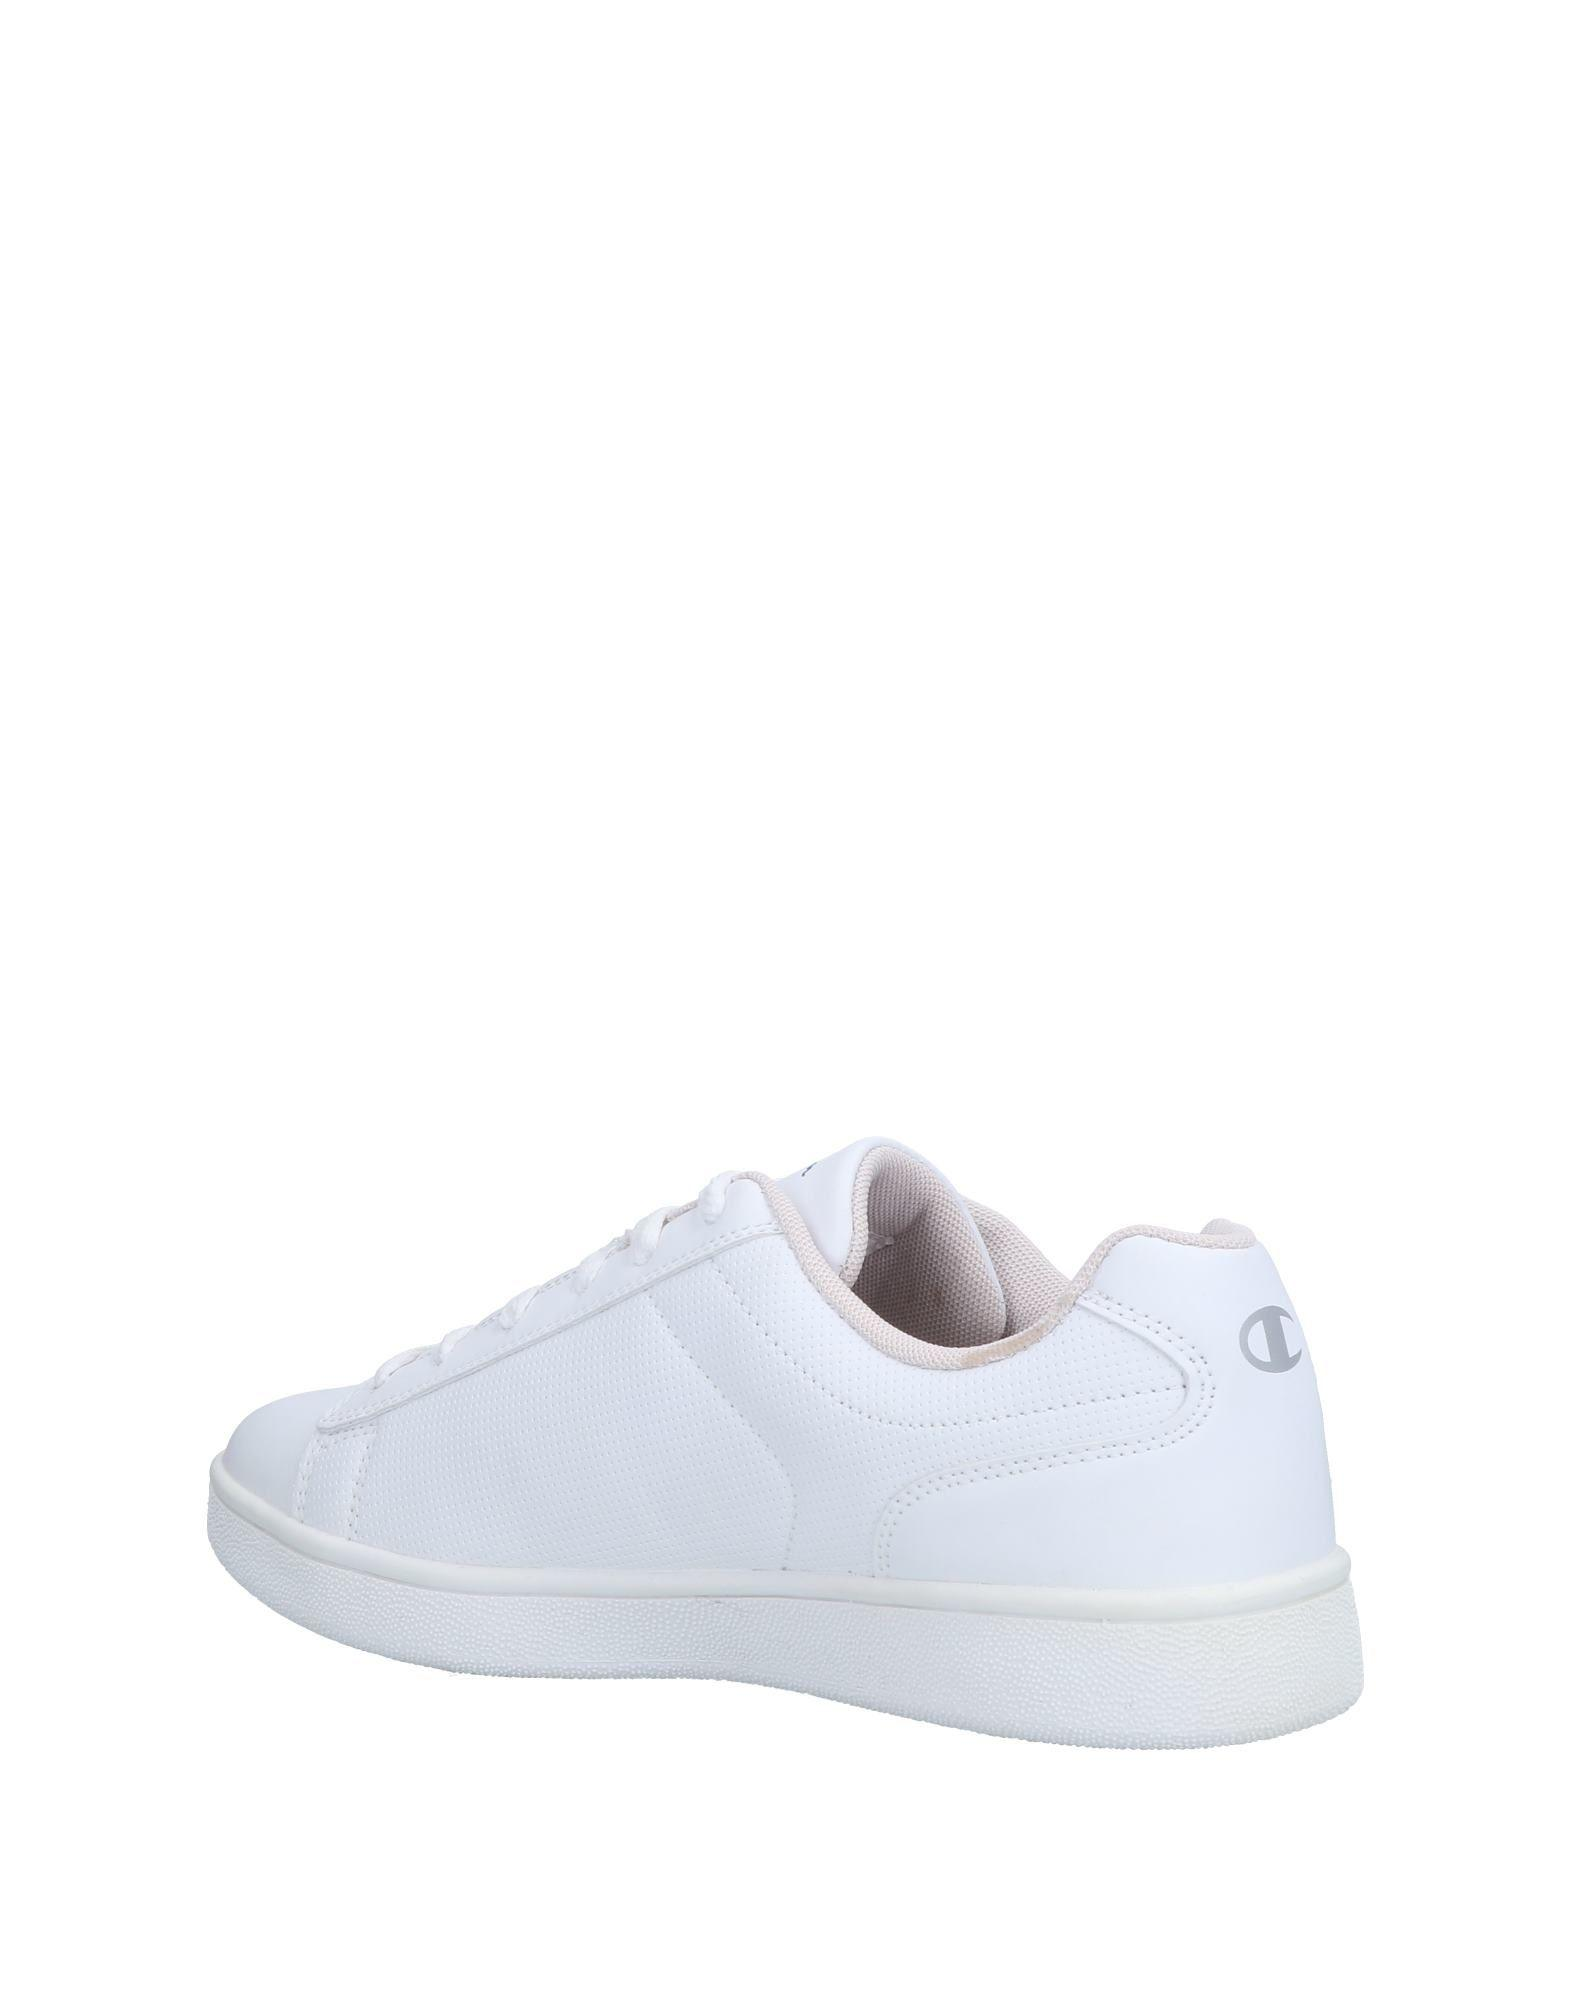 7357b6a79e717 Lyst - Champion Low-tops   Sneakers in White for Men